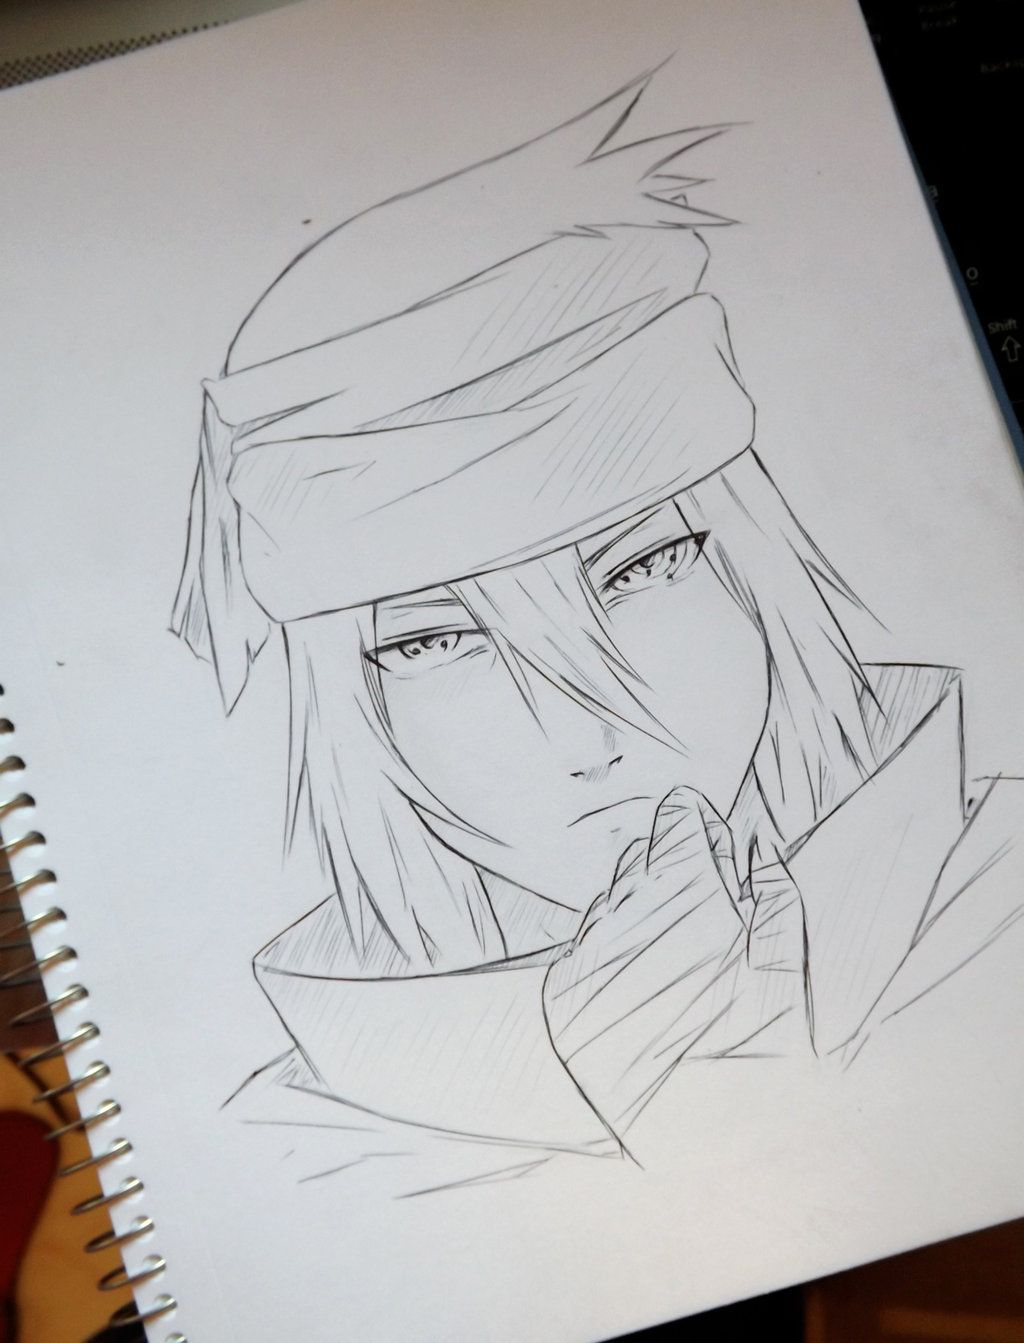 Sasuke Naruto The Last Drawings Dibujos De Anime Naruto